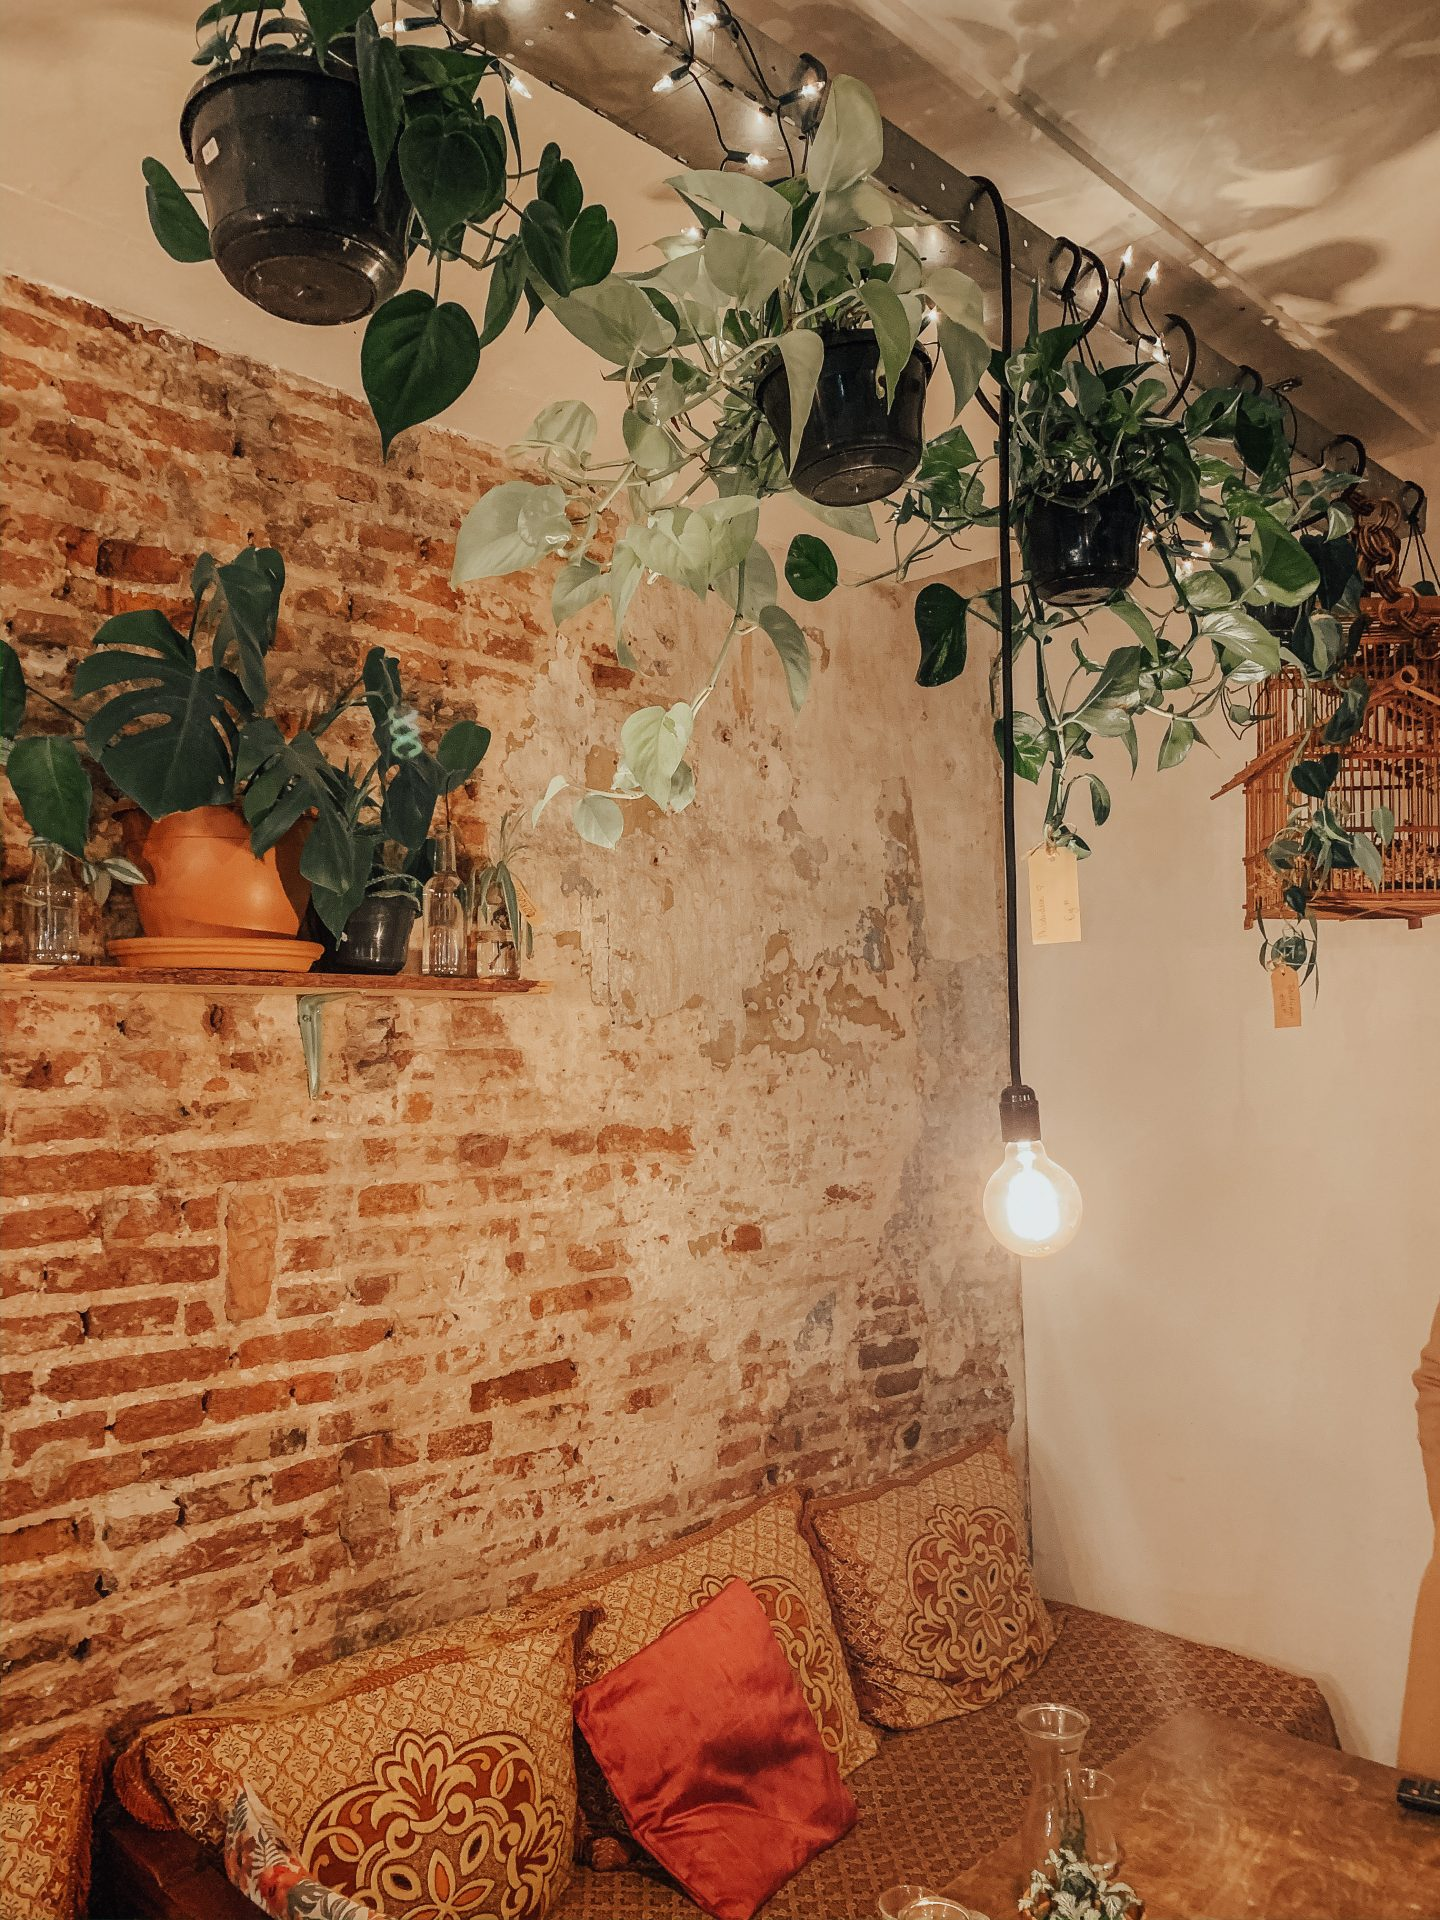 a brick wall in a cute cafe in the netherlands, lots of plants and sofas